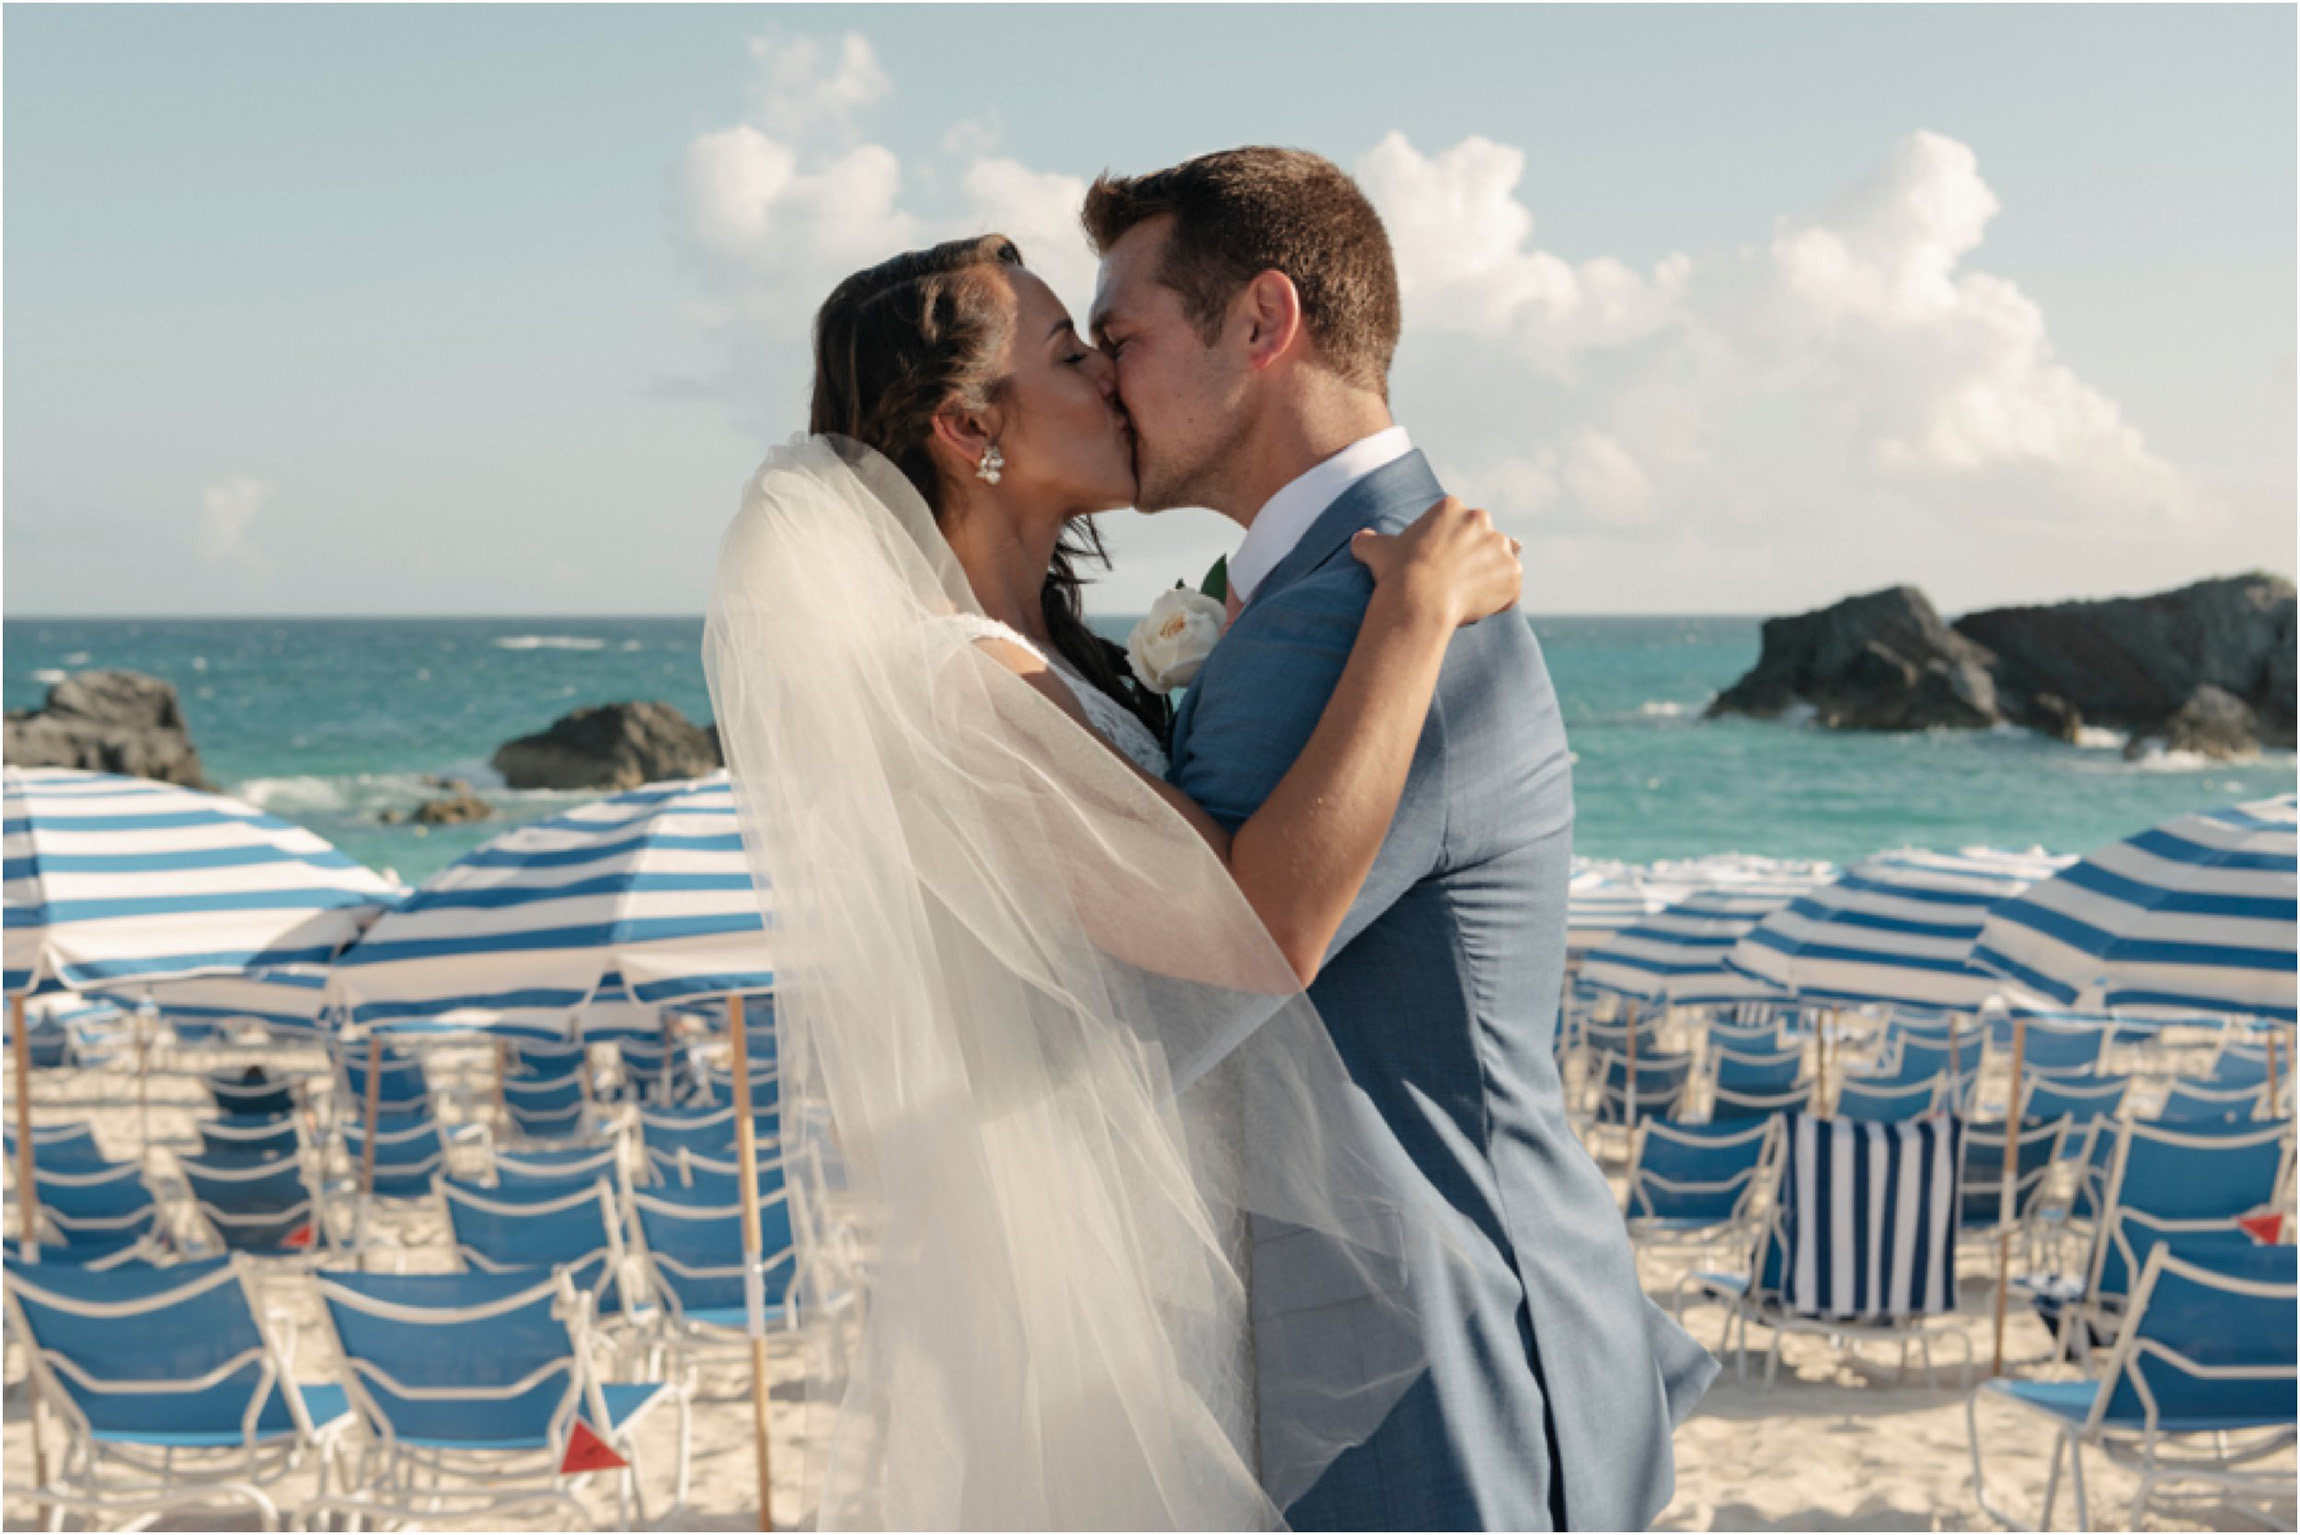 ©FianderFoto_Bermuda Wedding Photographer_Fairmont Southampton_Wedding_Anna_Thomas_063.jpg